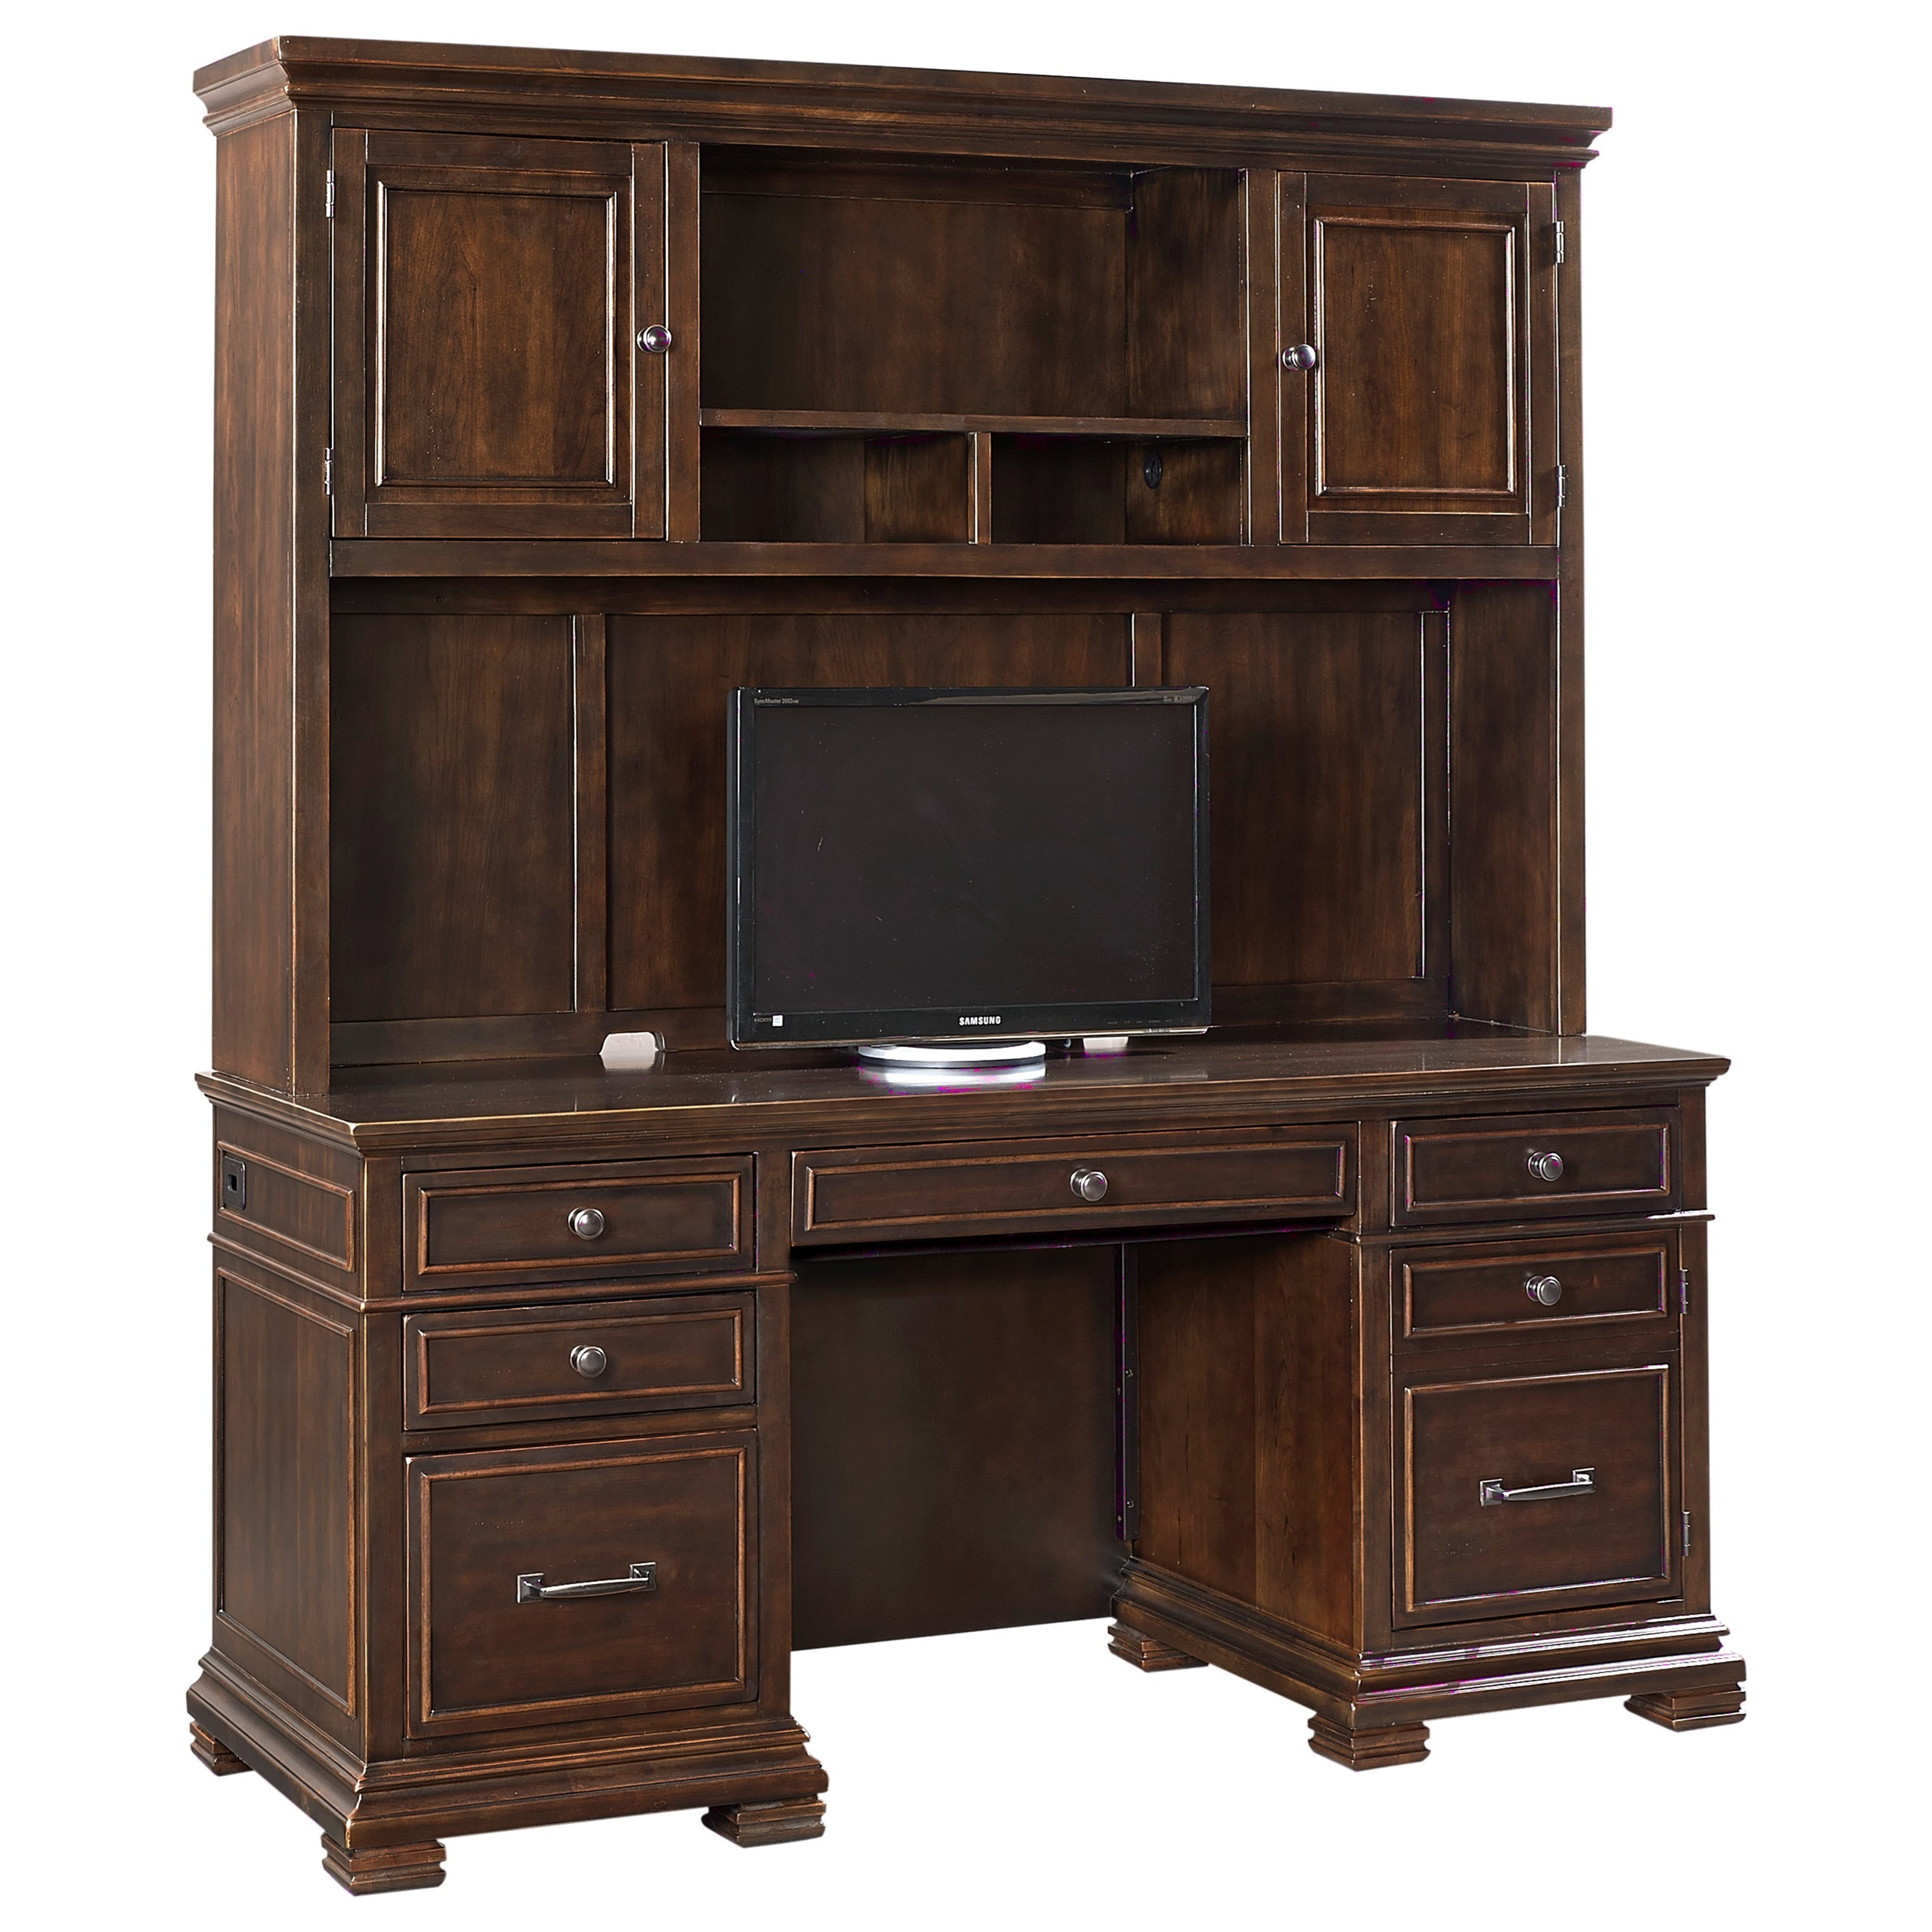 Aspenhome Weston Credenza With Hutch And Charging Station